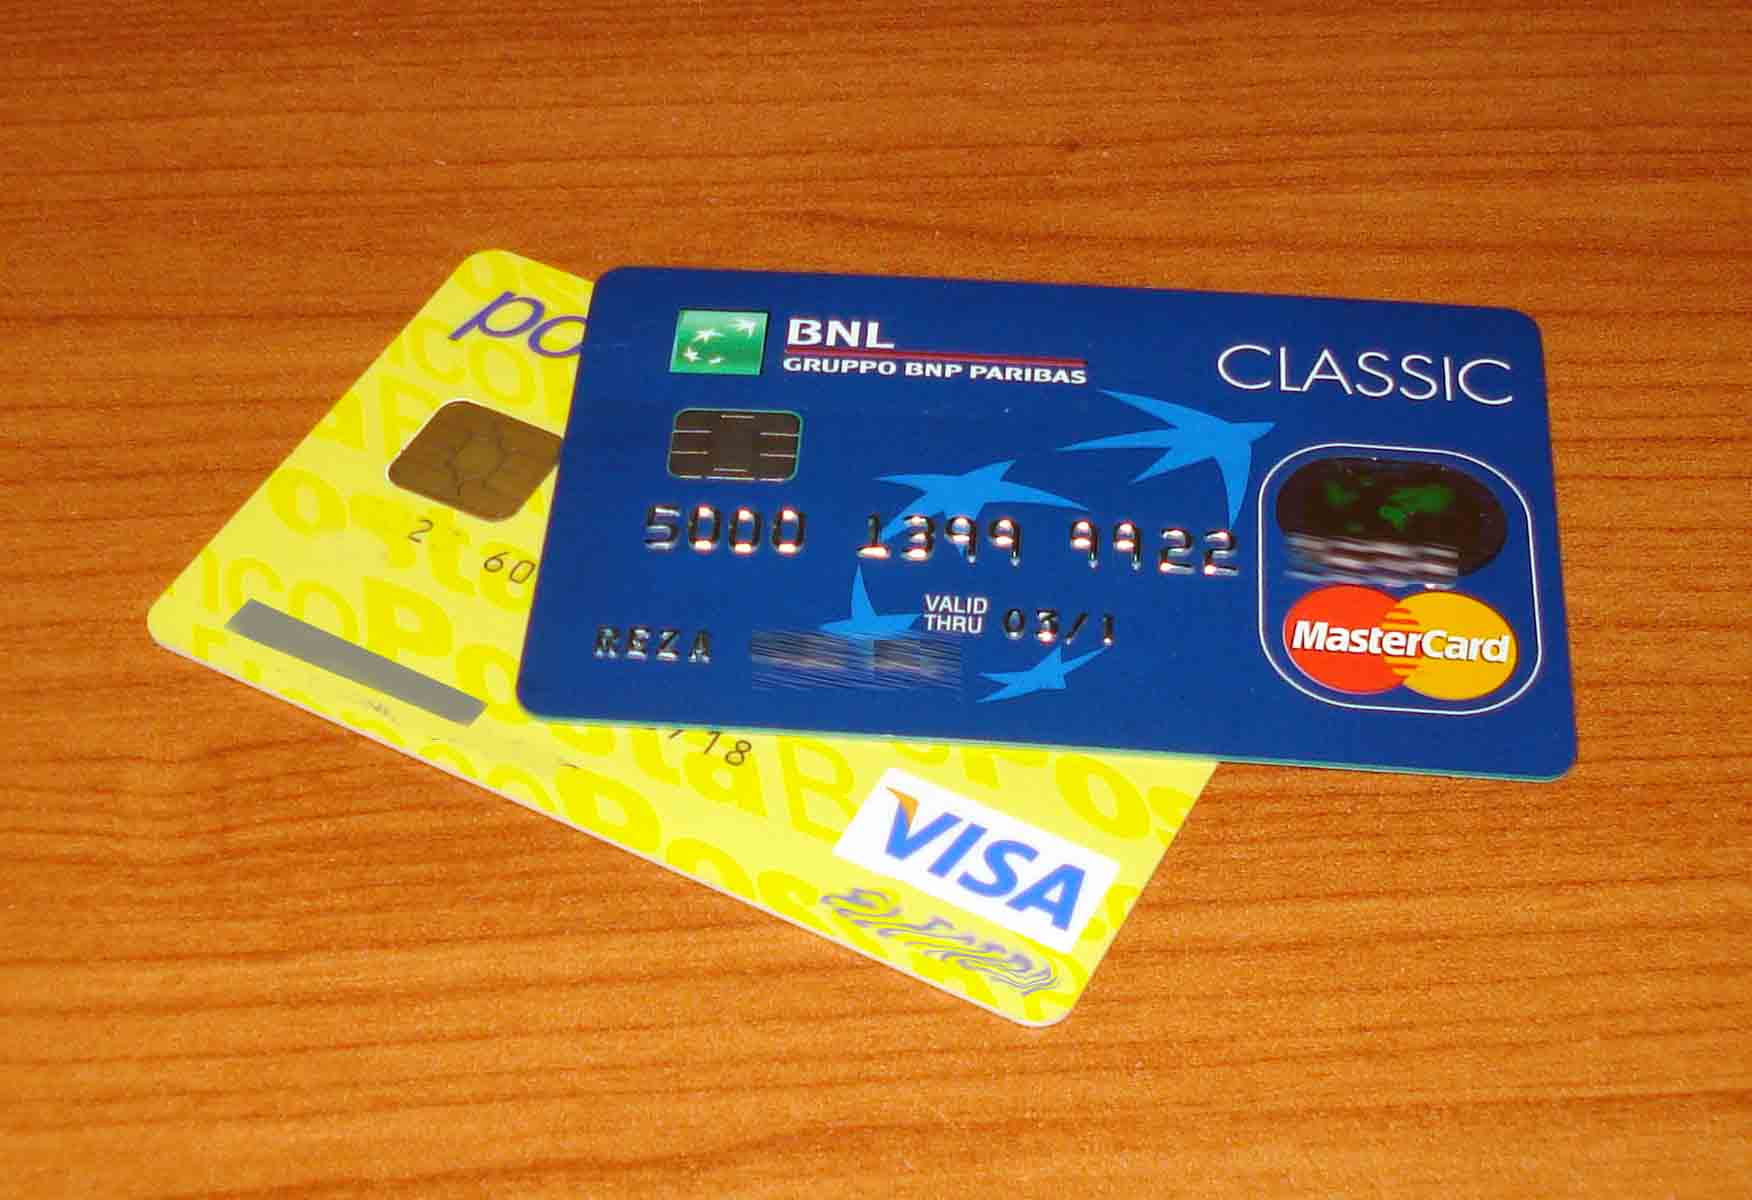 Fake Mastercard Number That Works